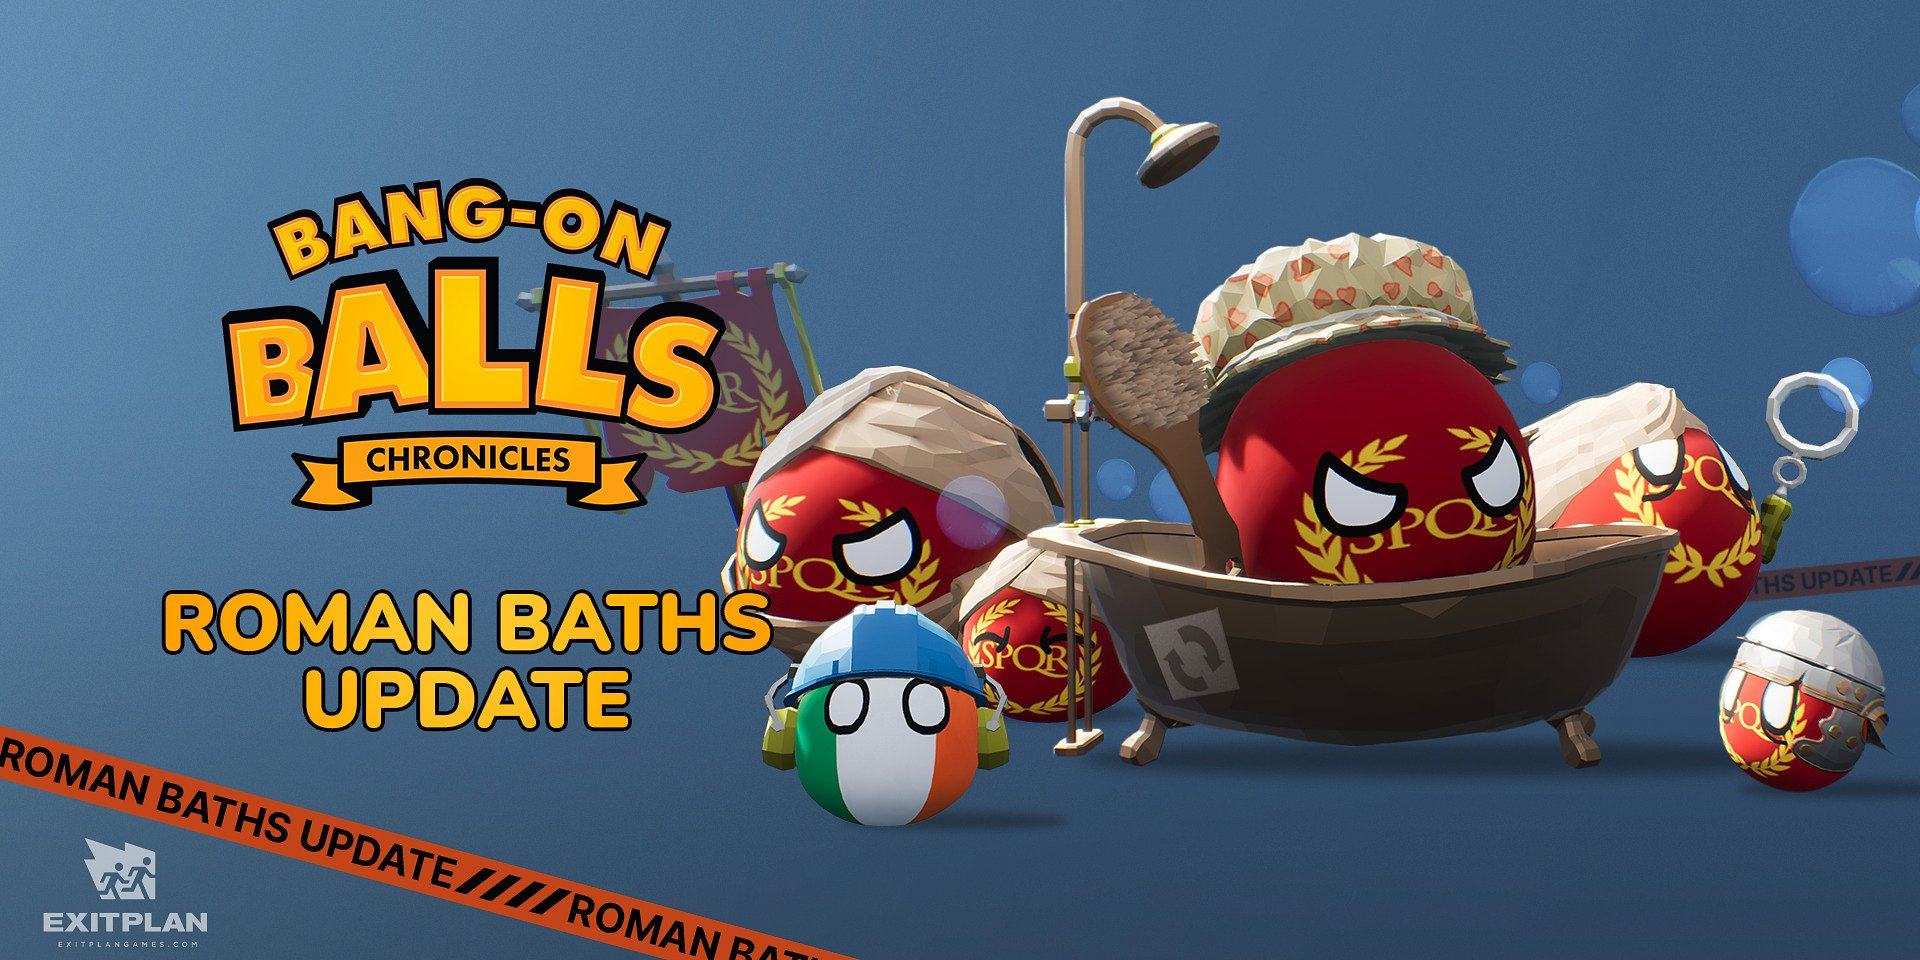 Let the BATHS begin! Bang-on Balls: Chronicles Roman Baths Update is rolling out!